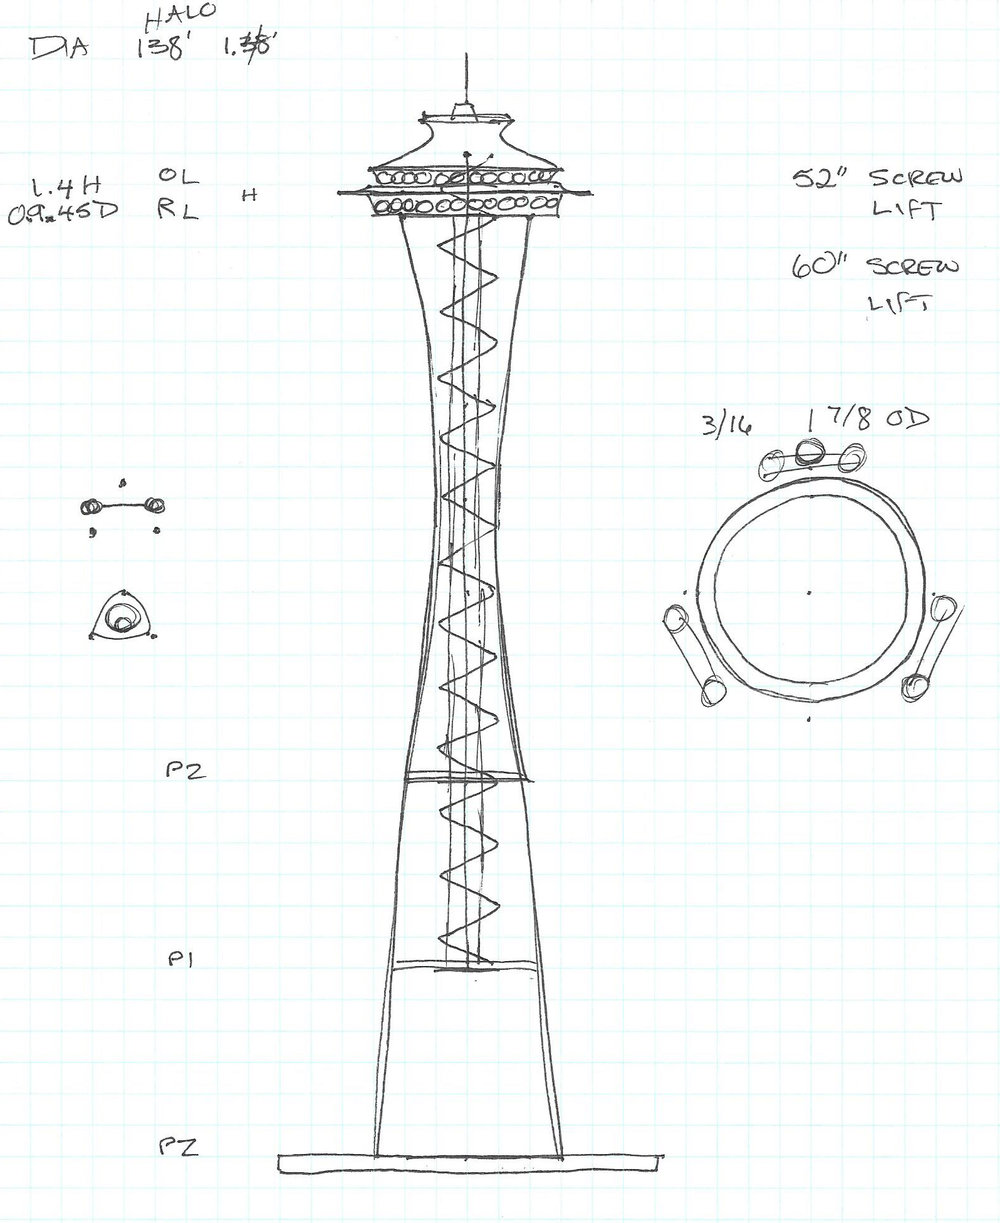 spaceneedlesketch2.jpg